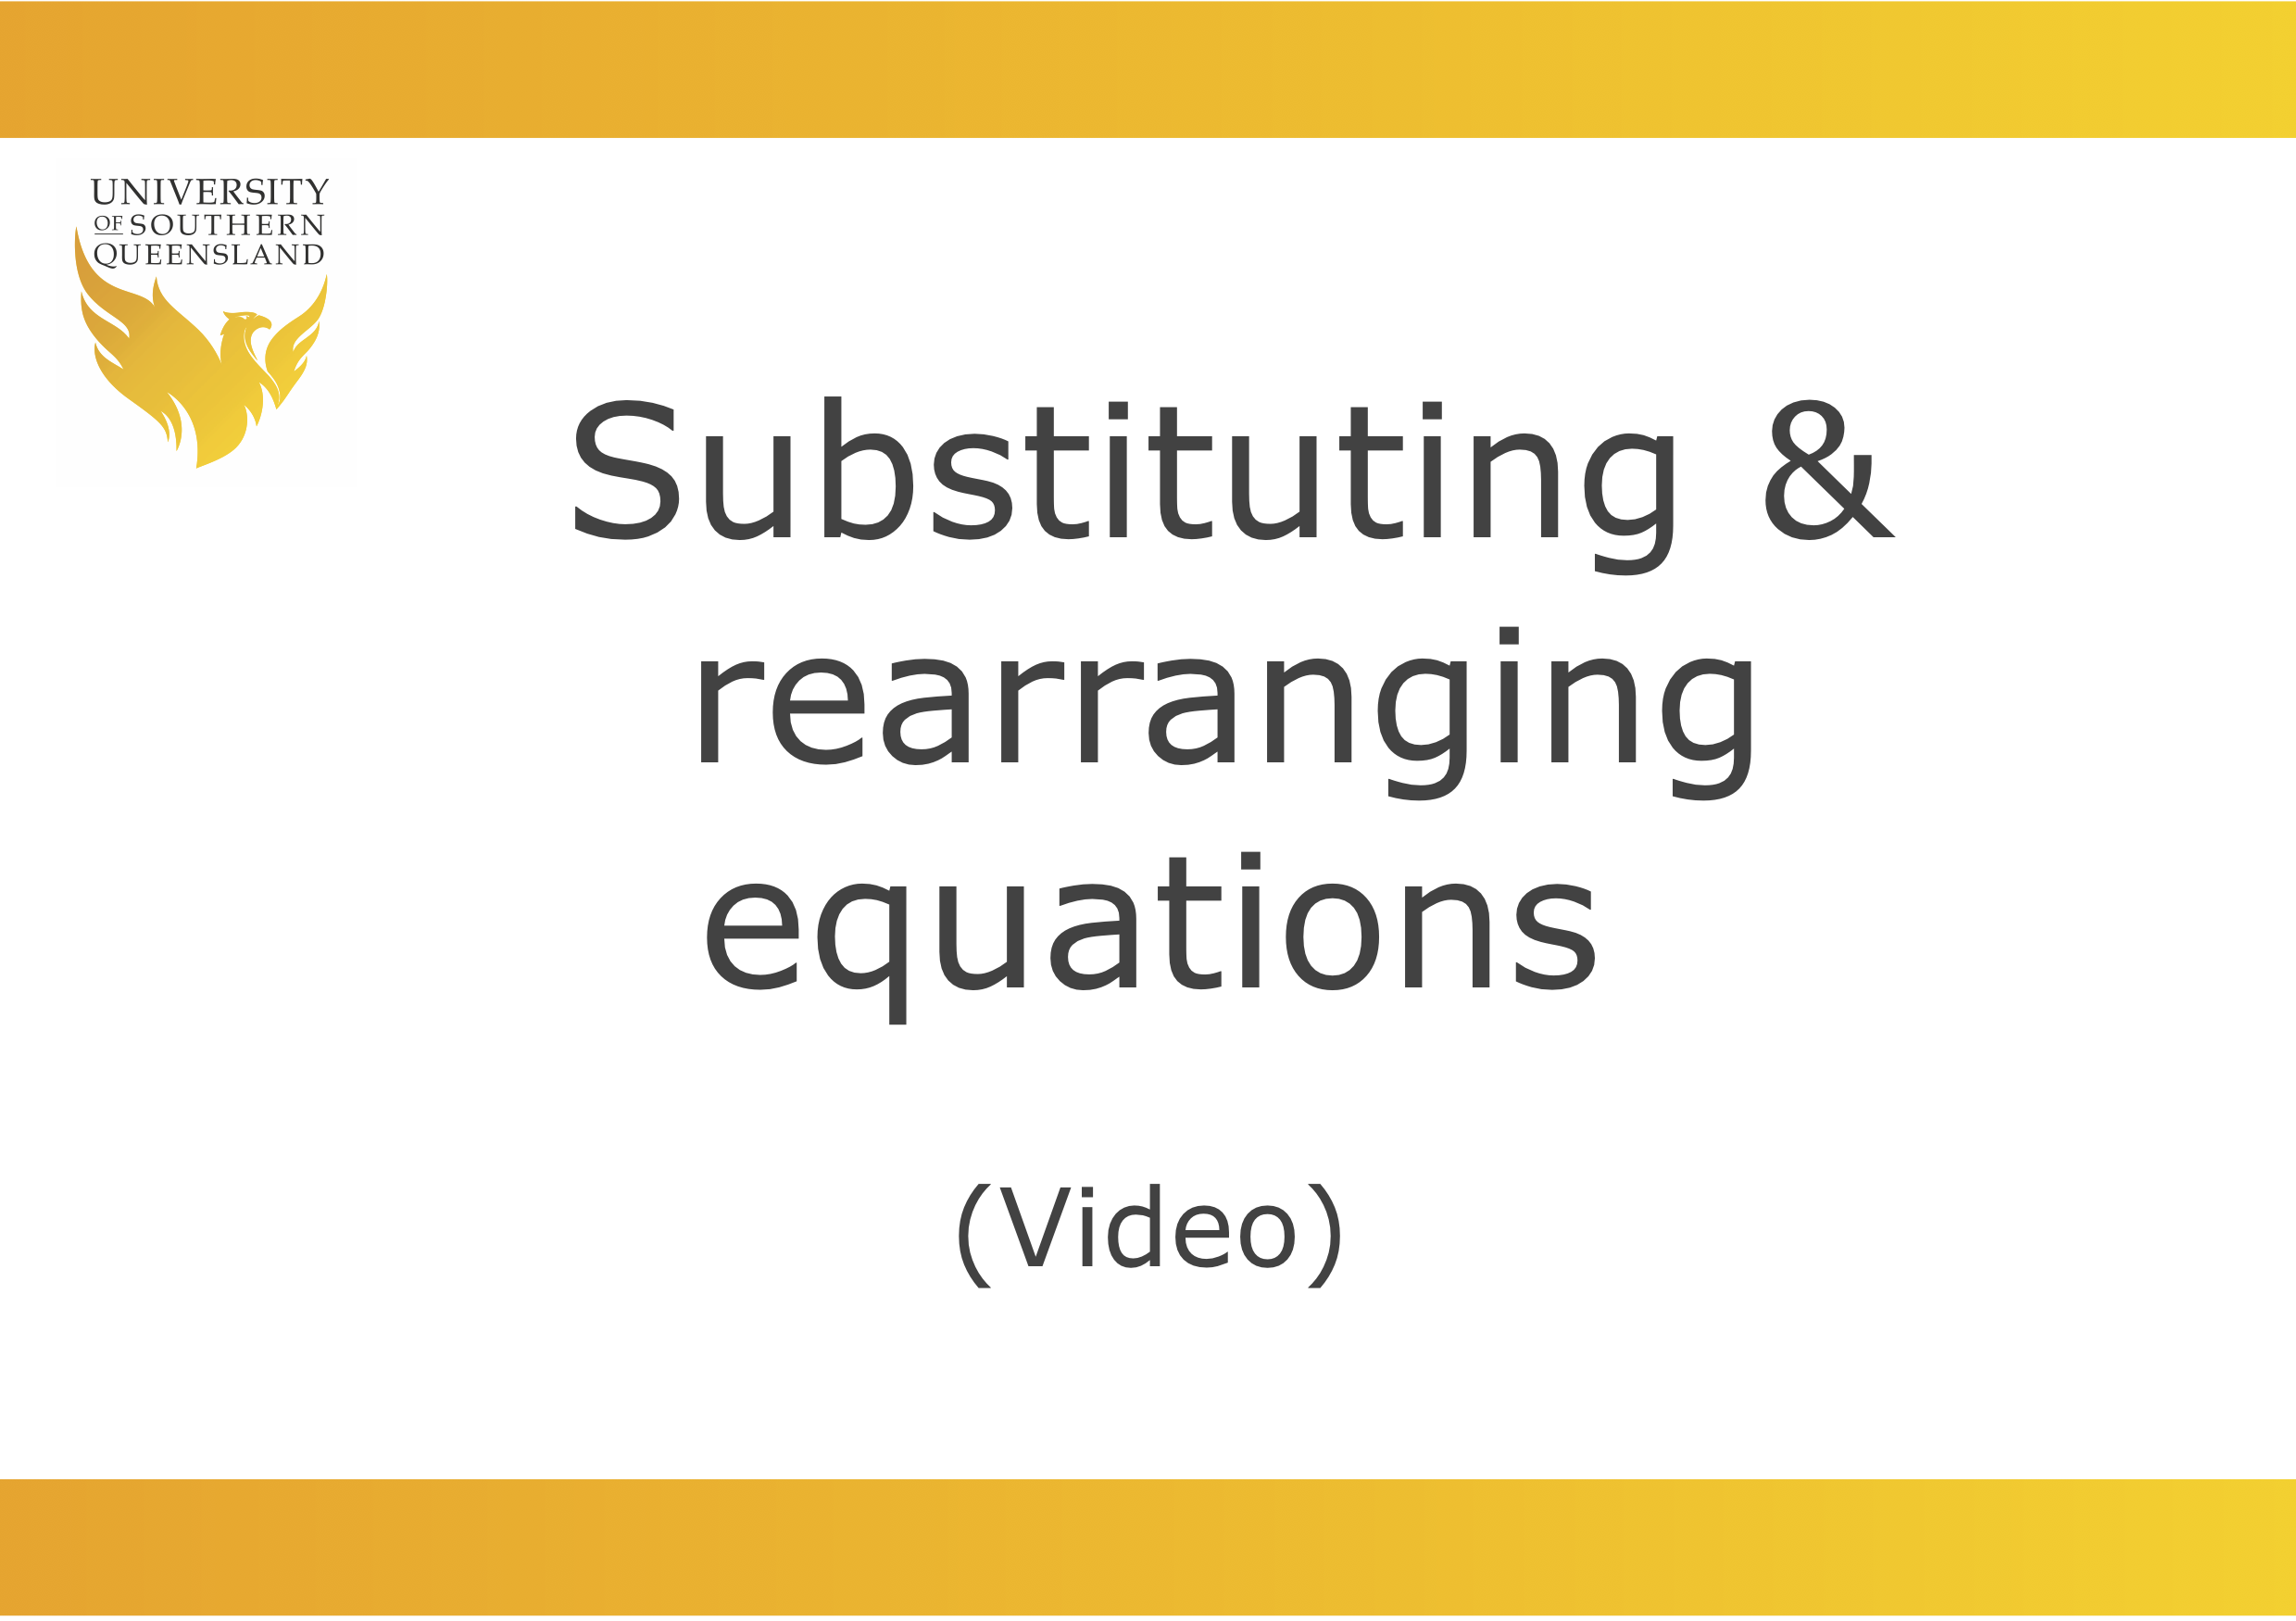 Substituting and rearranging equations